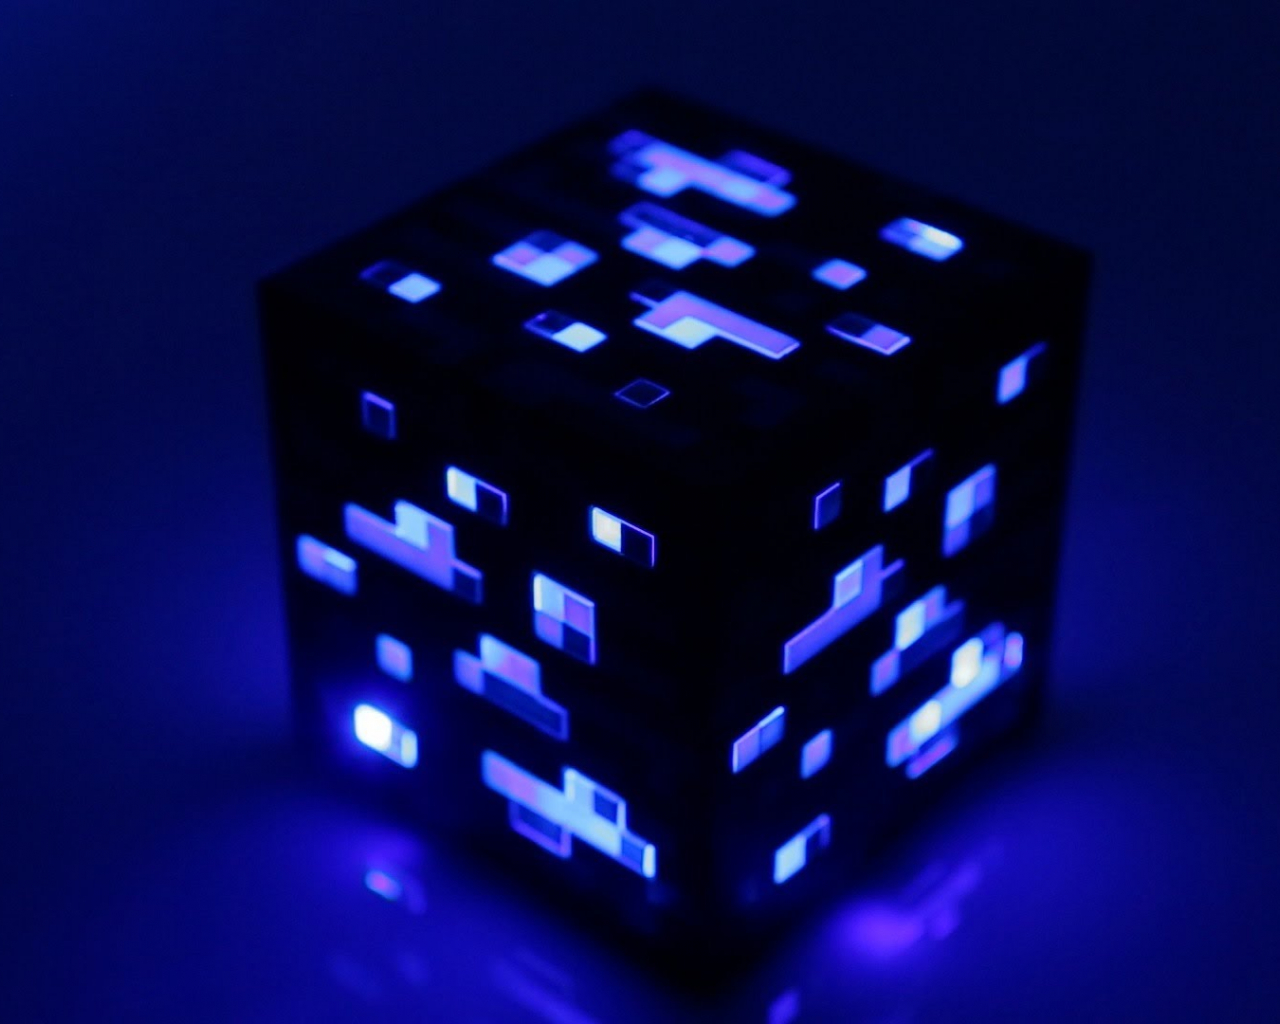 Cool Wallpaper Diamond Minecraft